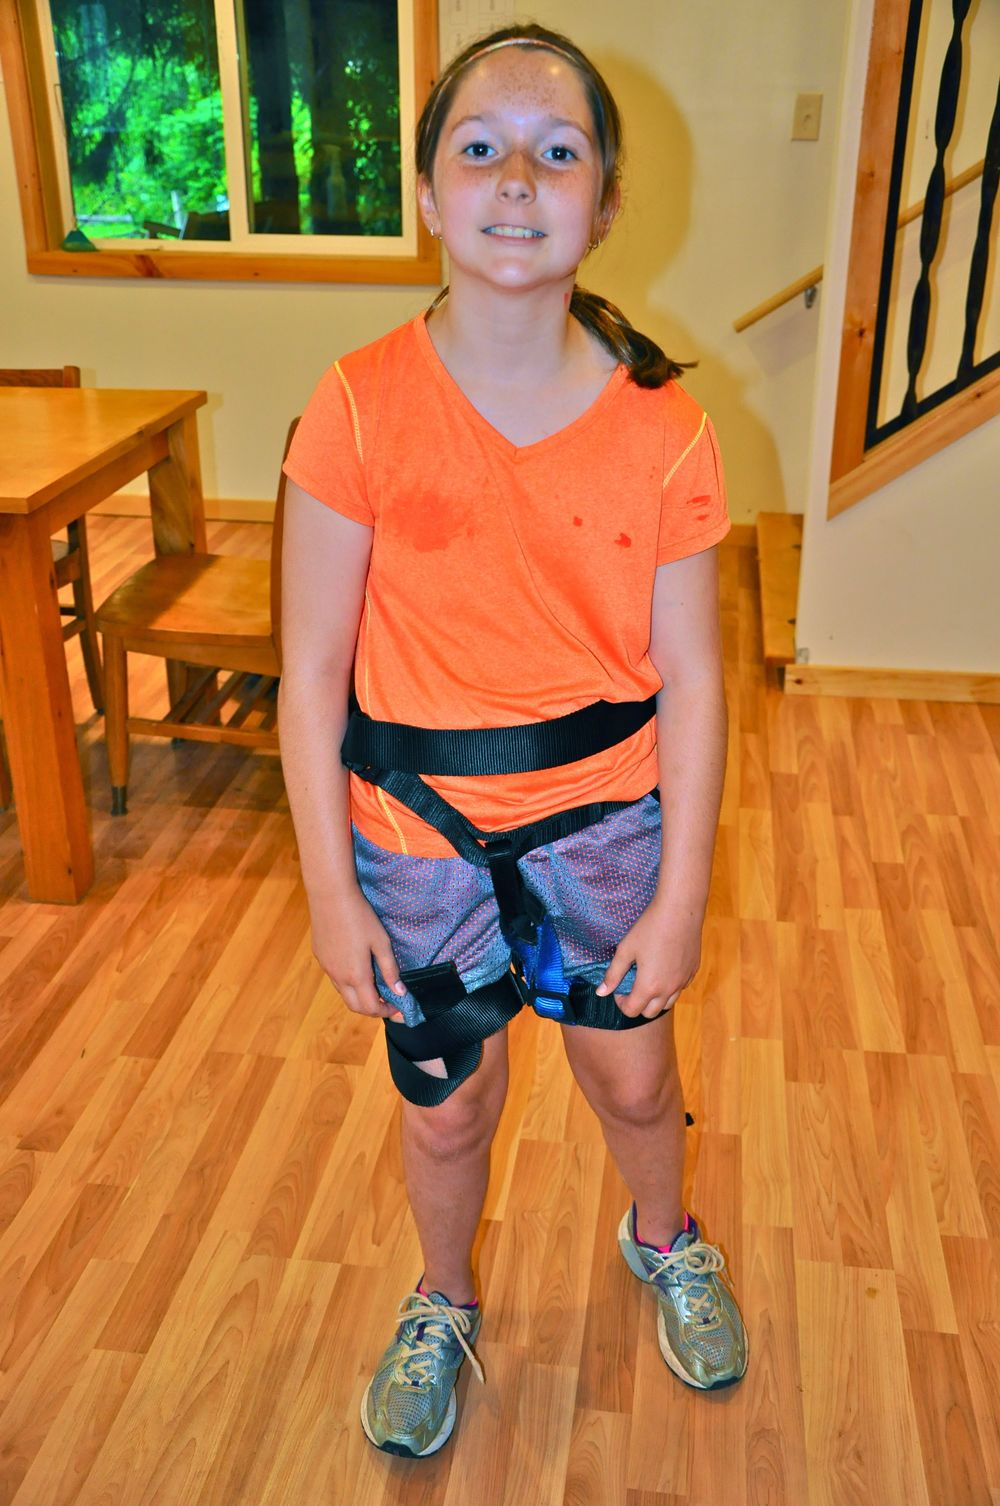 olivia-puts-on-climbing-gear-to-practice-for-the-climbing-wall.jpg